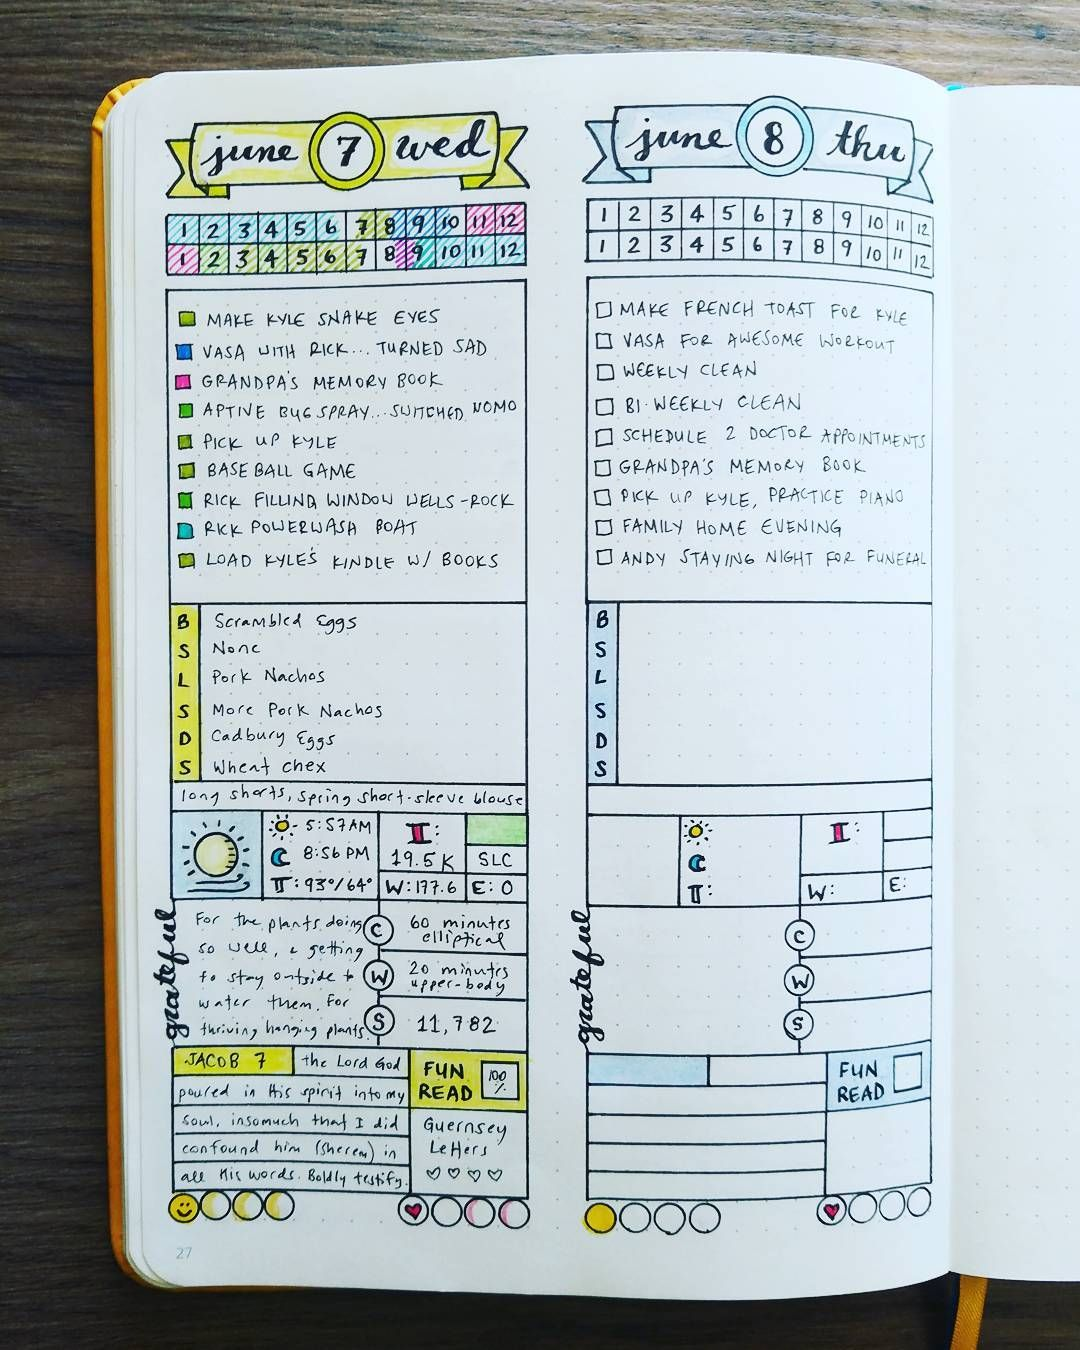 New bullet journal setup daily spread june 2017 week 23 new bullet journal setup daily spread june 2017 week 23 yesterday you saw malvernweather Image collections